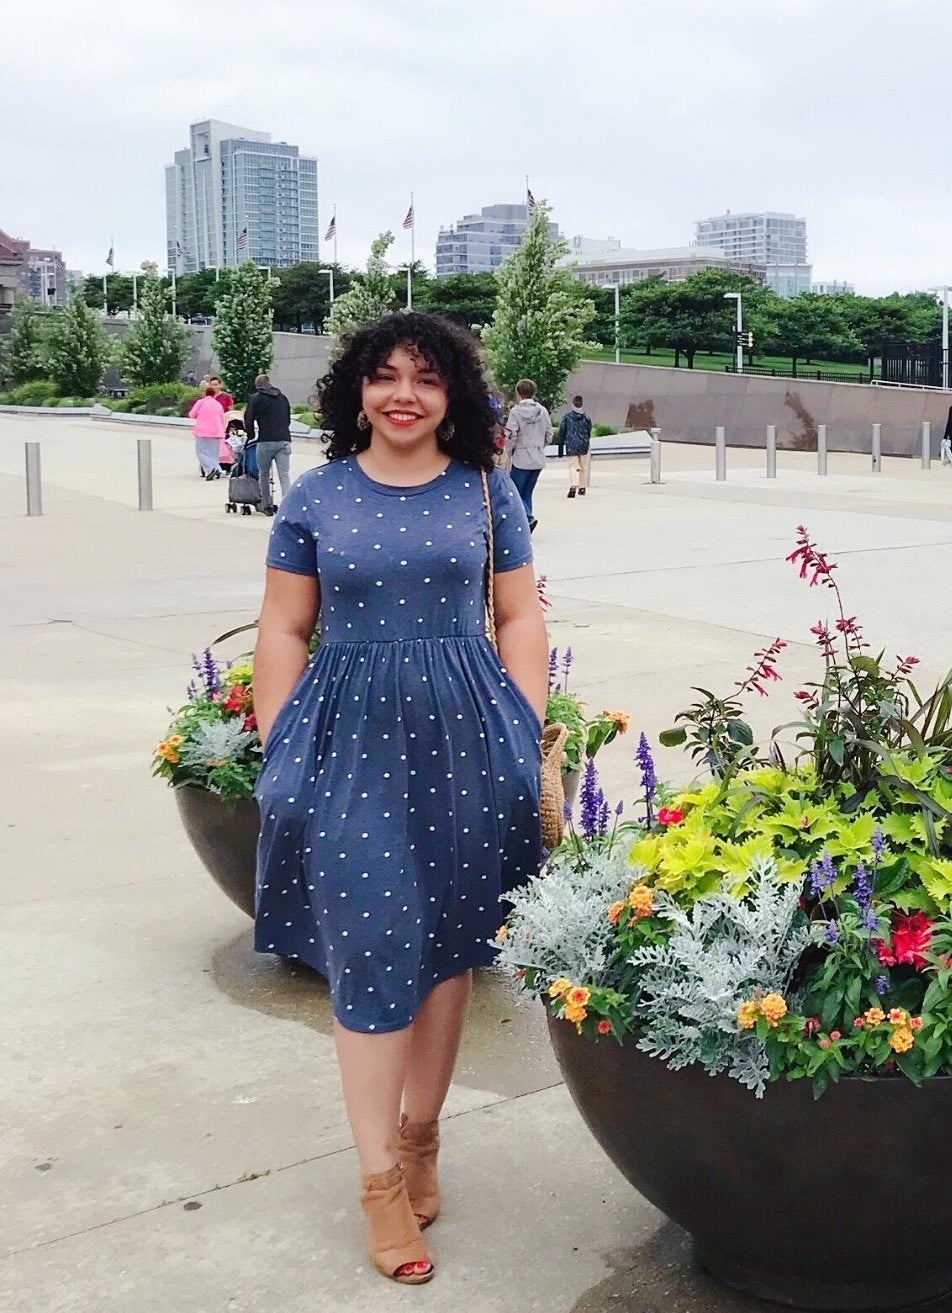 reviewer wears dress with white polka dot